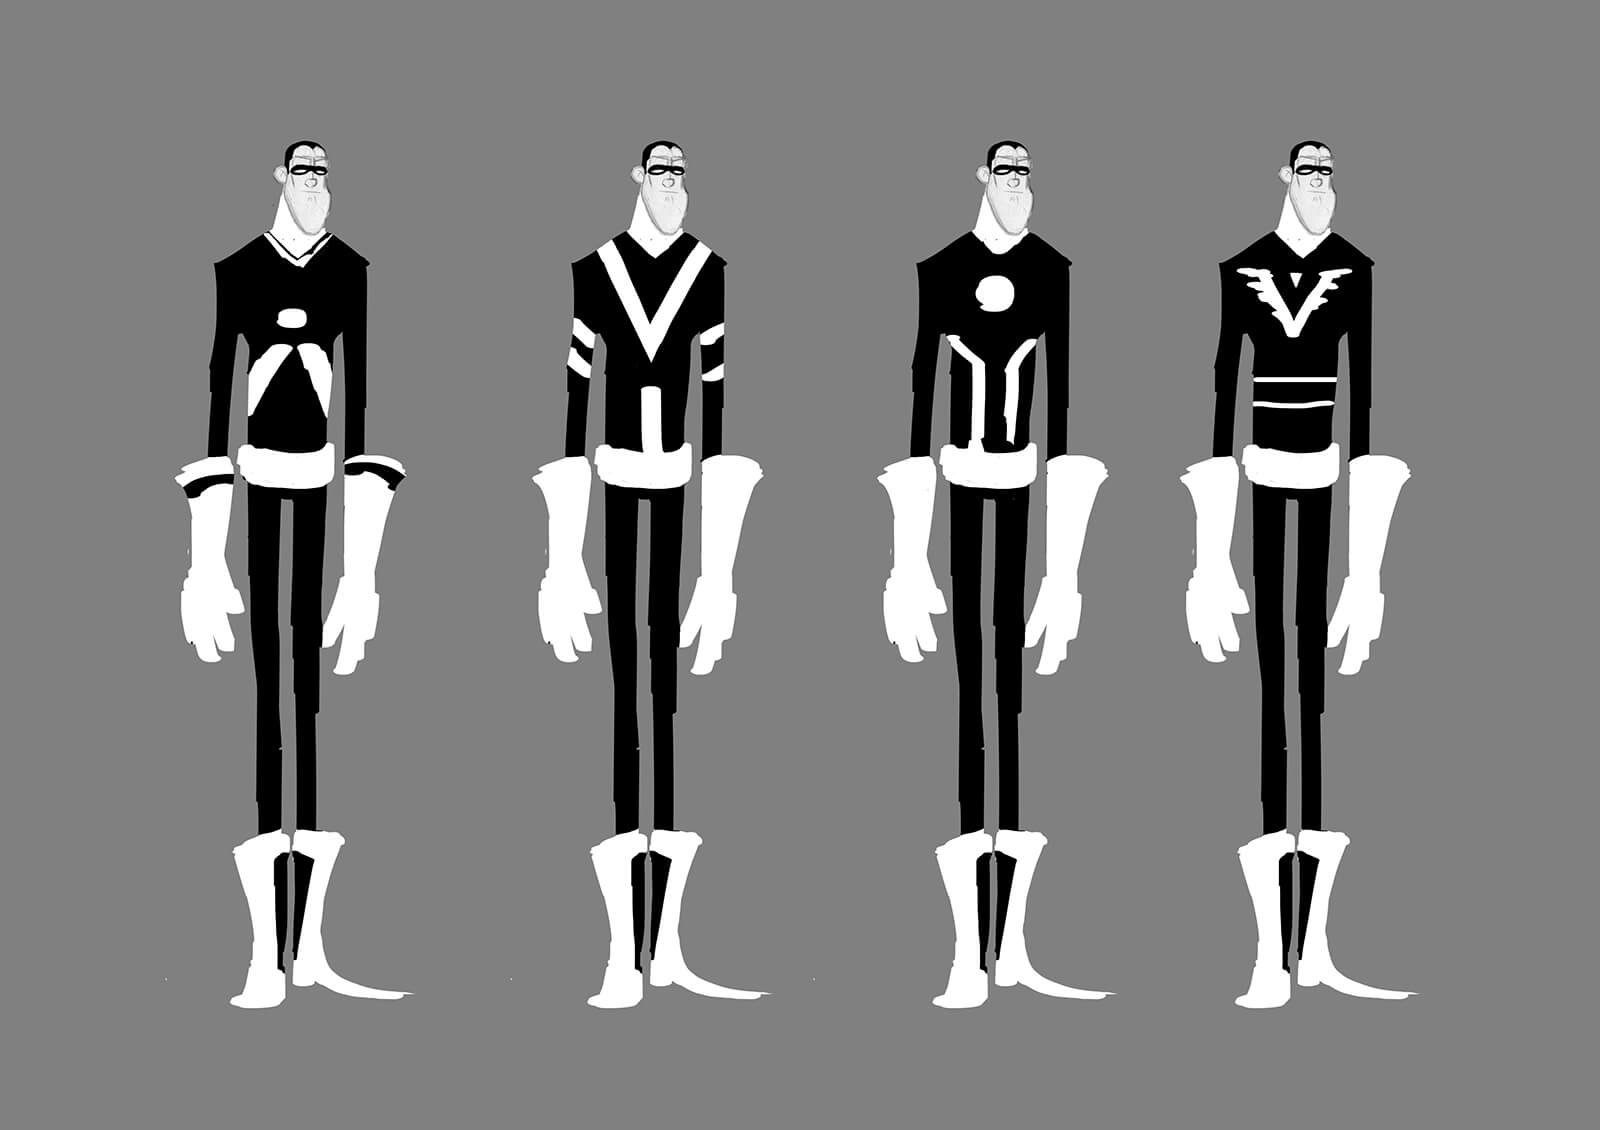 Black-and-white concept sketches or a tall, thin man in a futuristic outfit with differing chest logos standing side to side